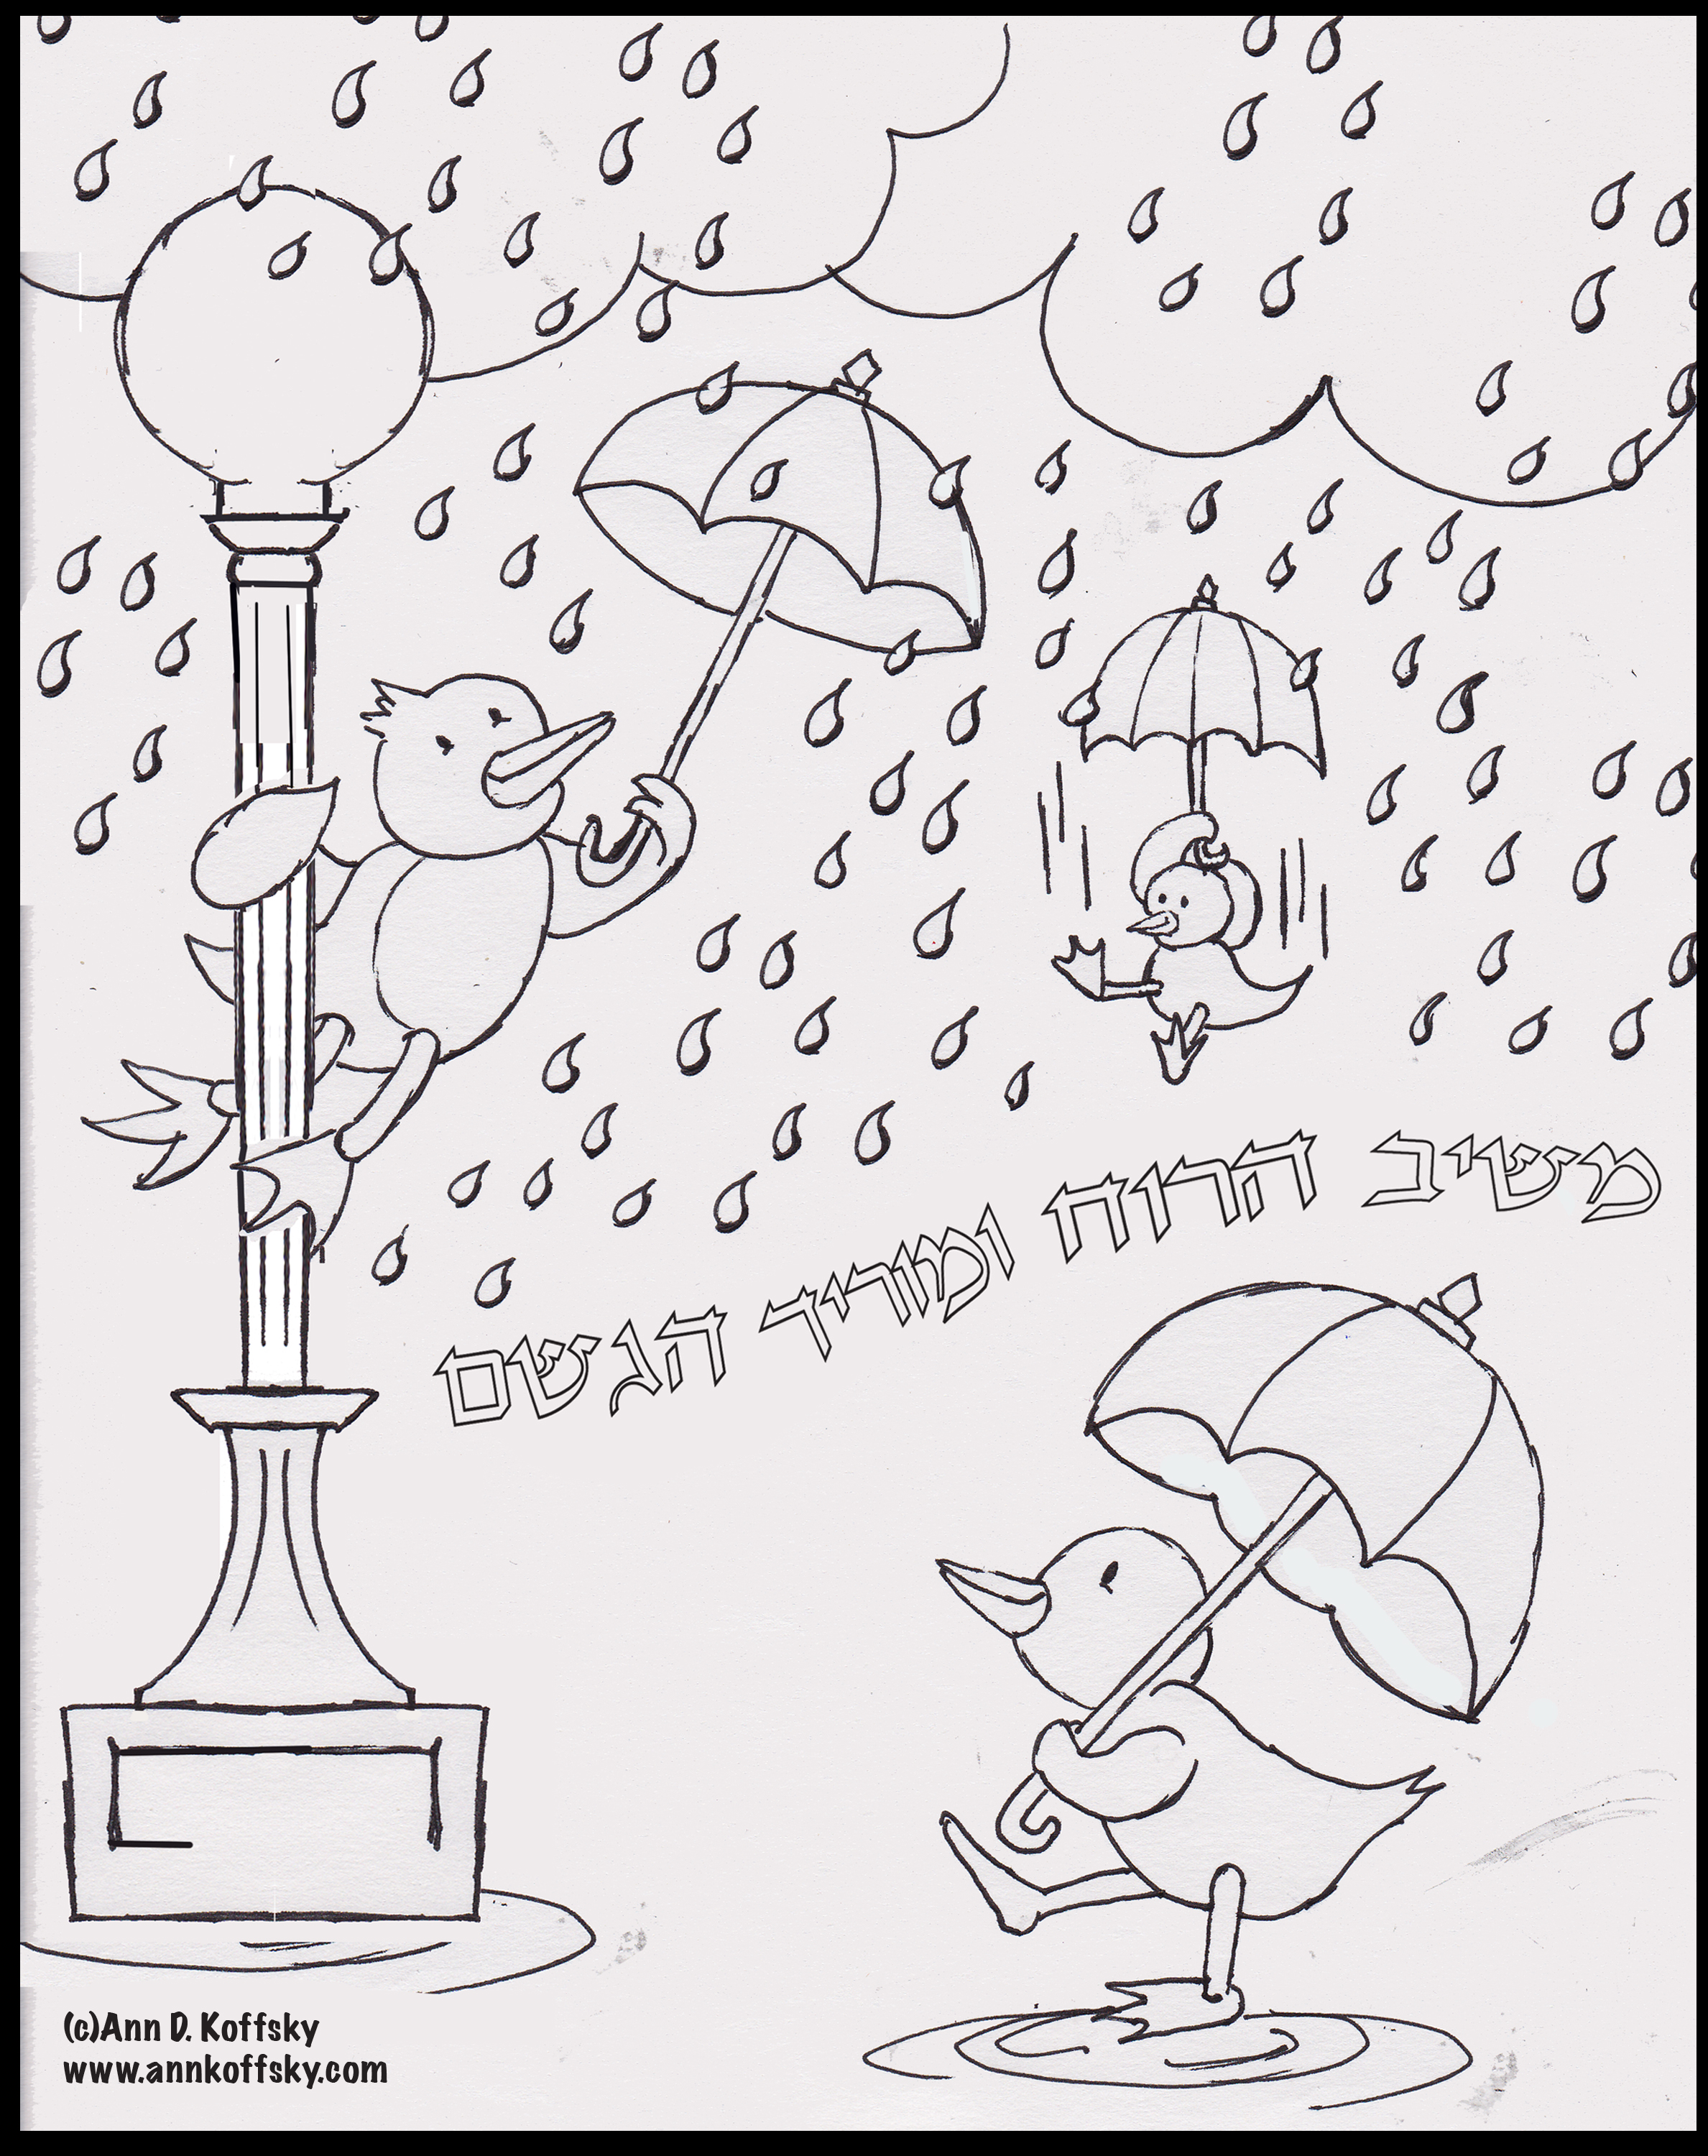 Free Rainy Season Images For Kids Download Free Clip Art